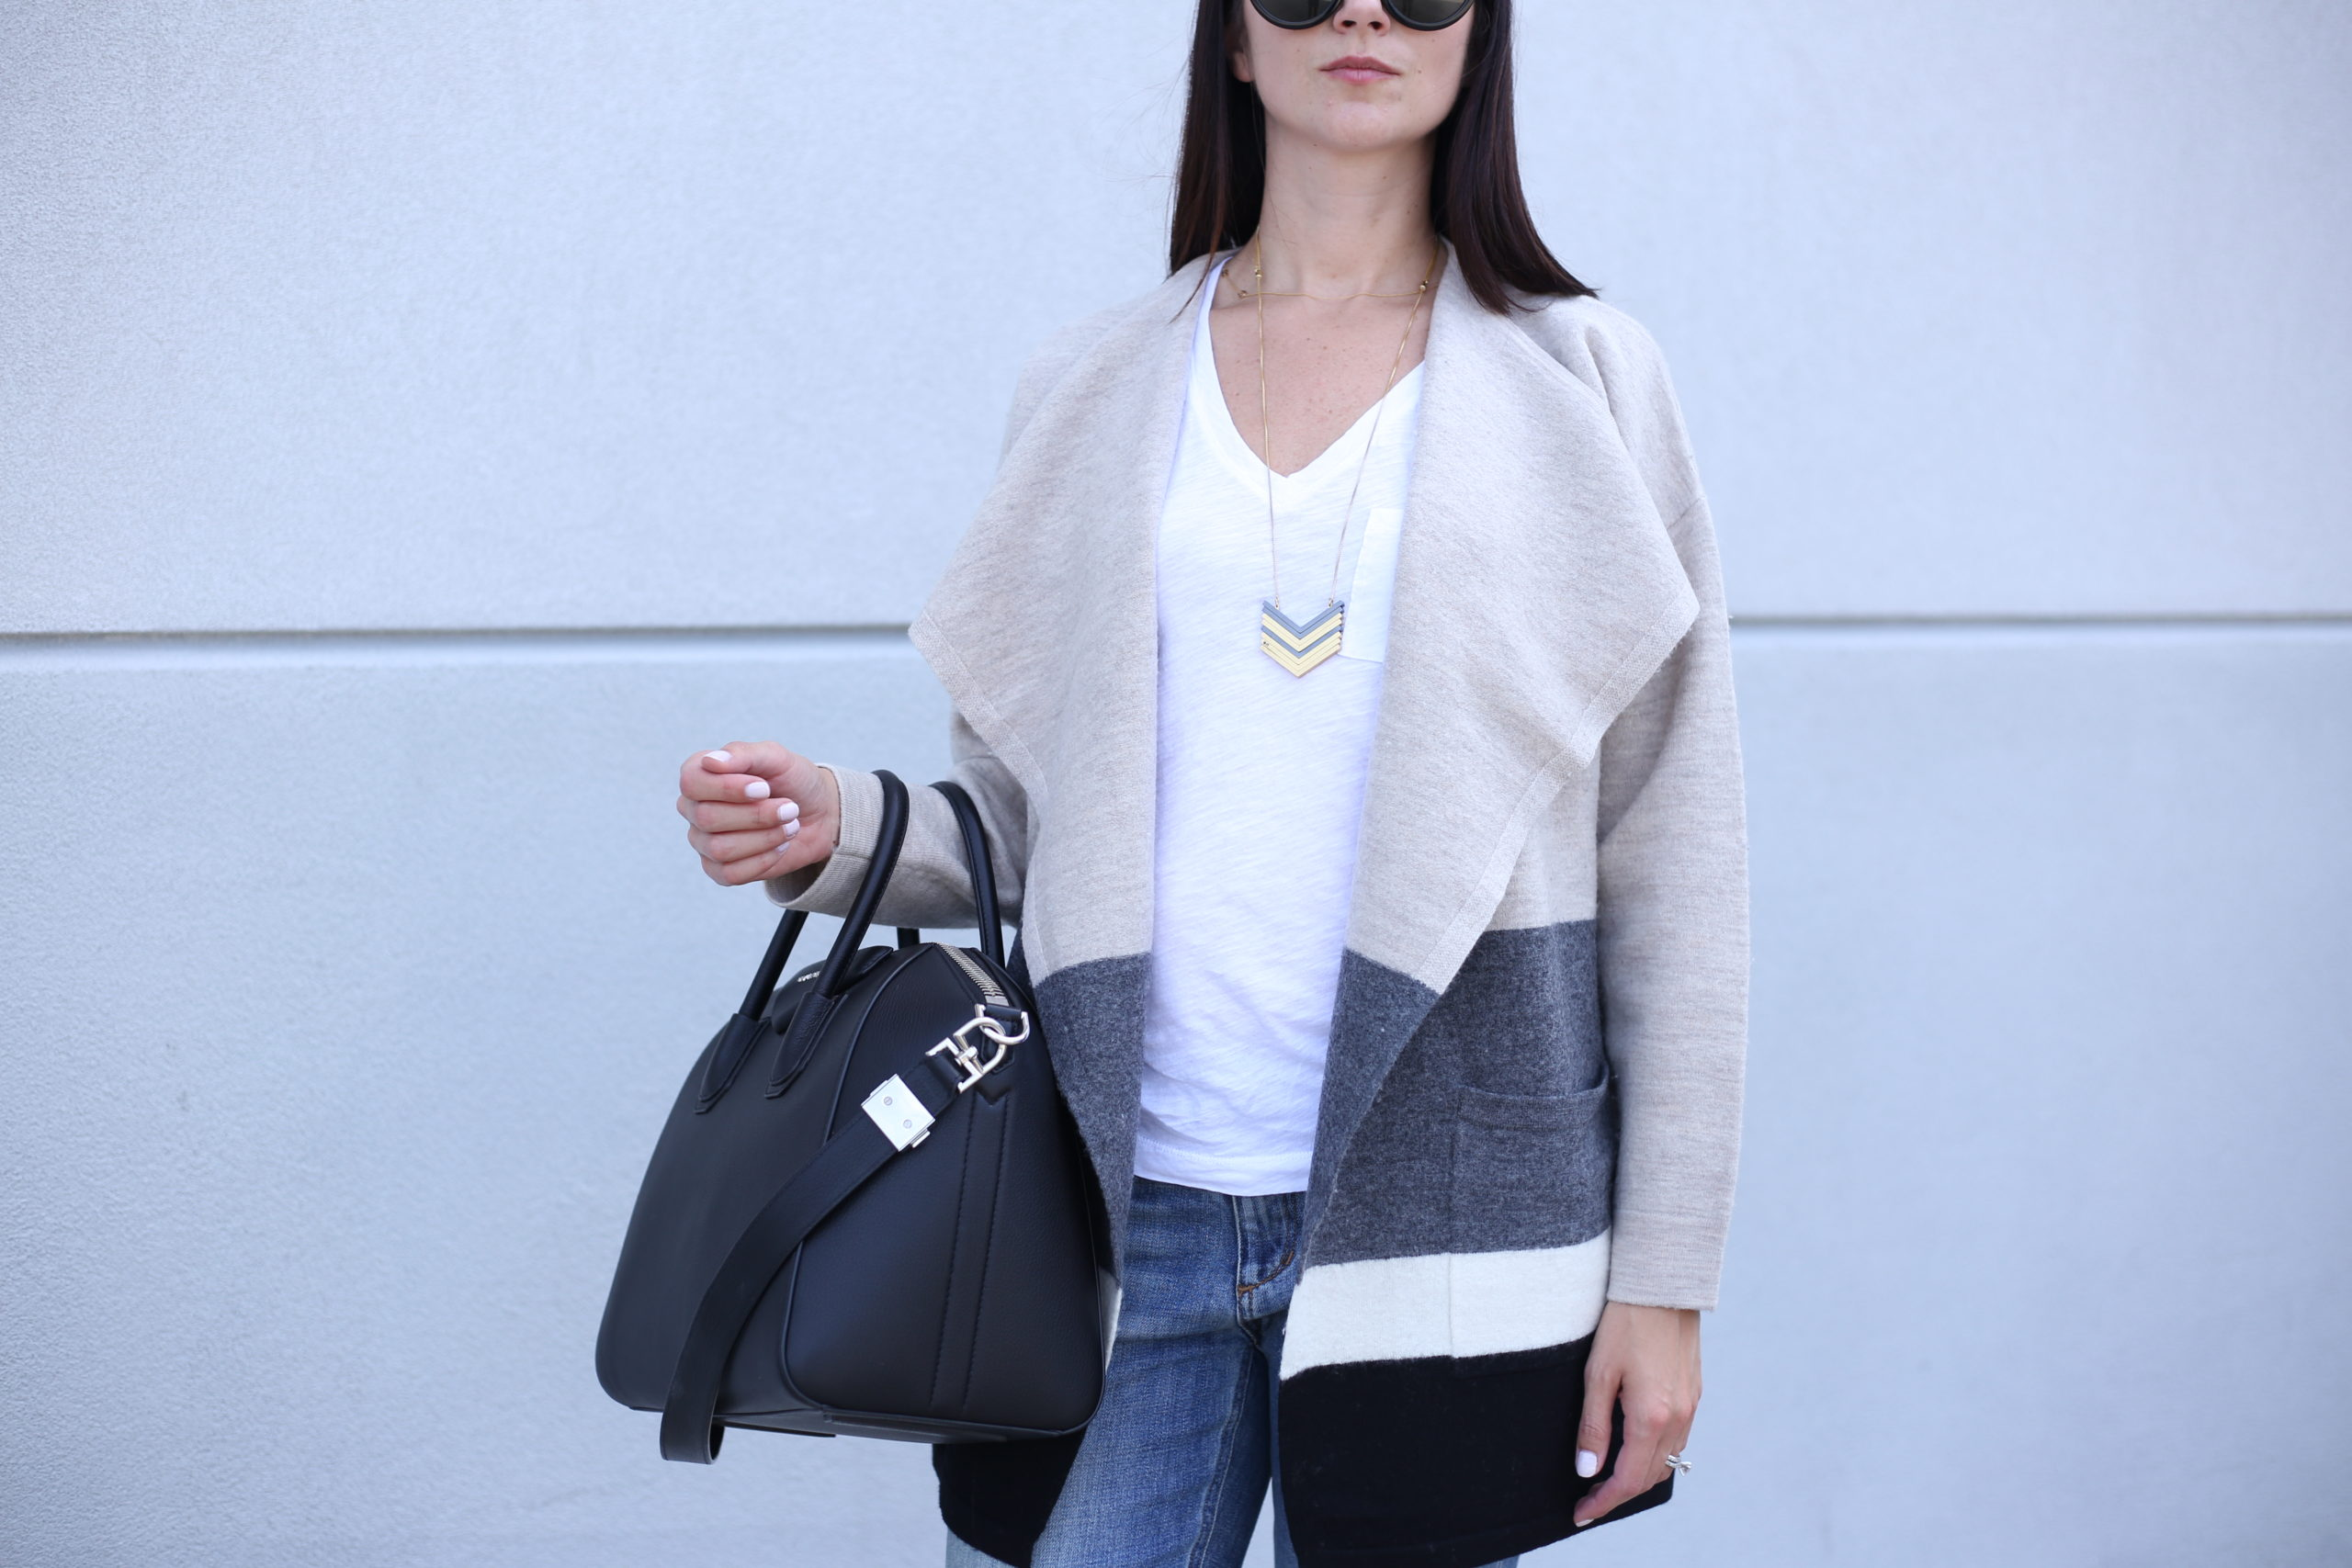 Sweater Weather – Early Fall Edition